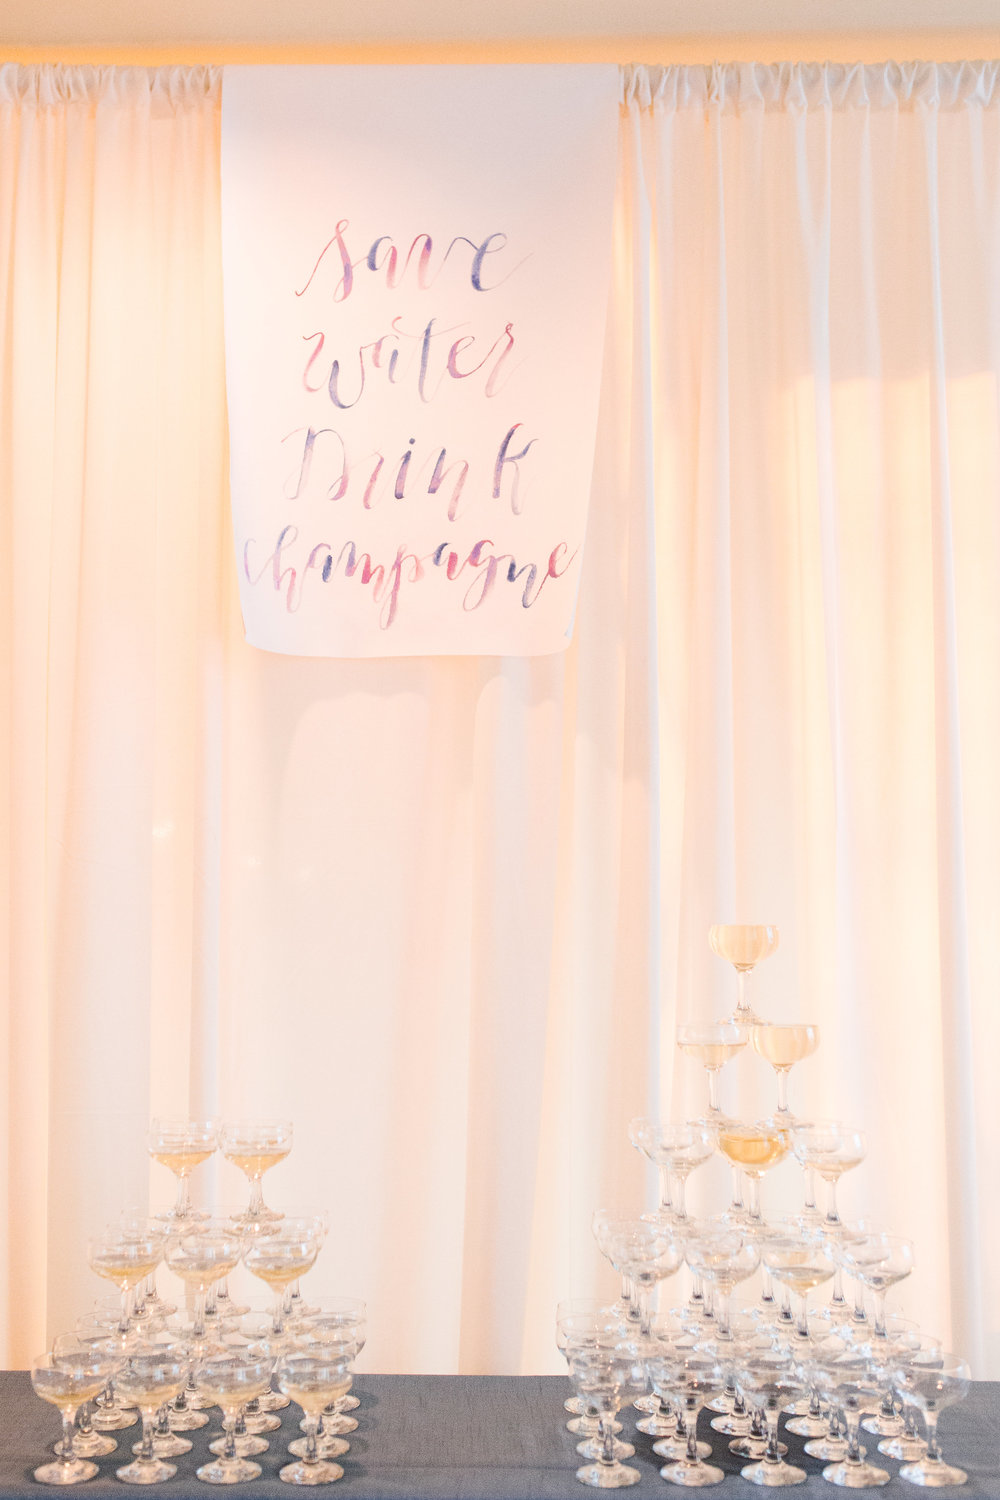 Styling and event by   Eventi by Diana Venditto  . Photography by   Brooke Michelle  . Calligraphy by   Shotgunning for Love Letters  .